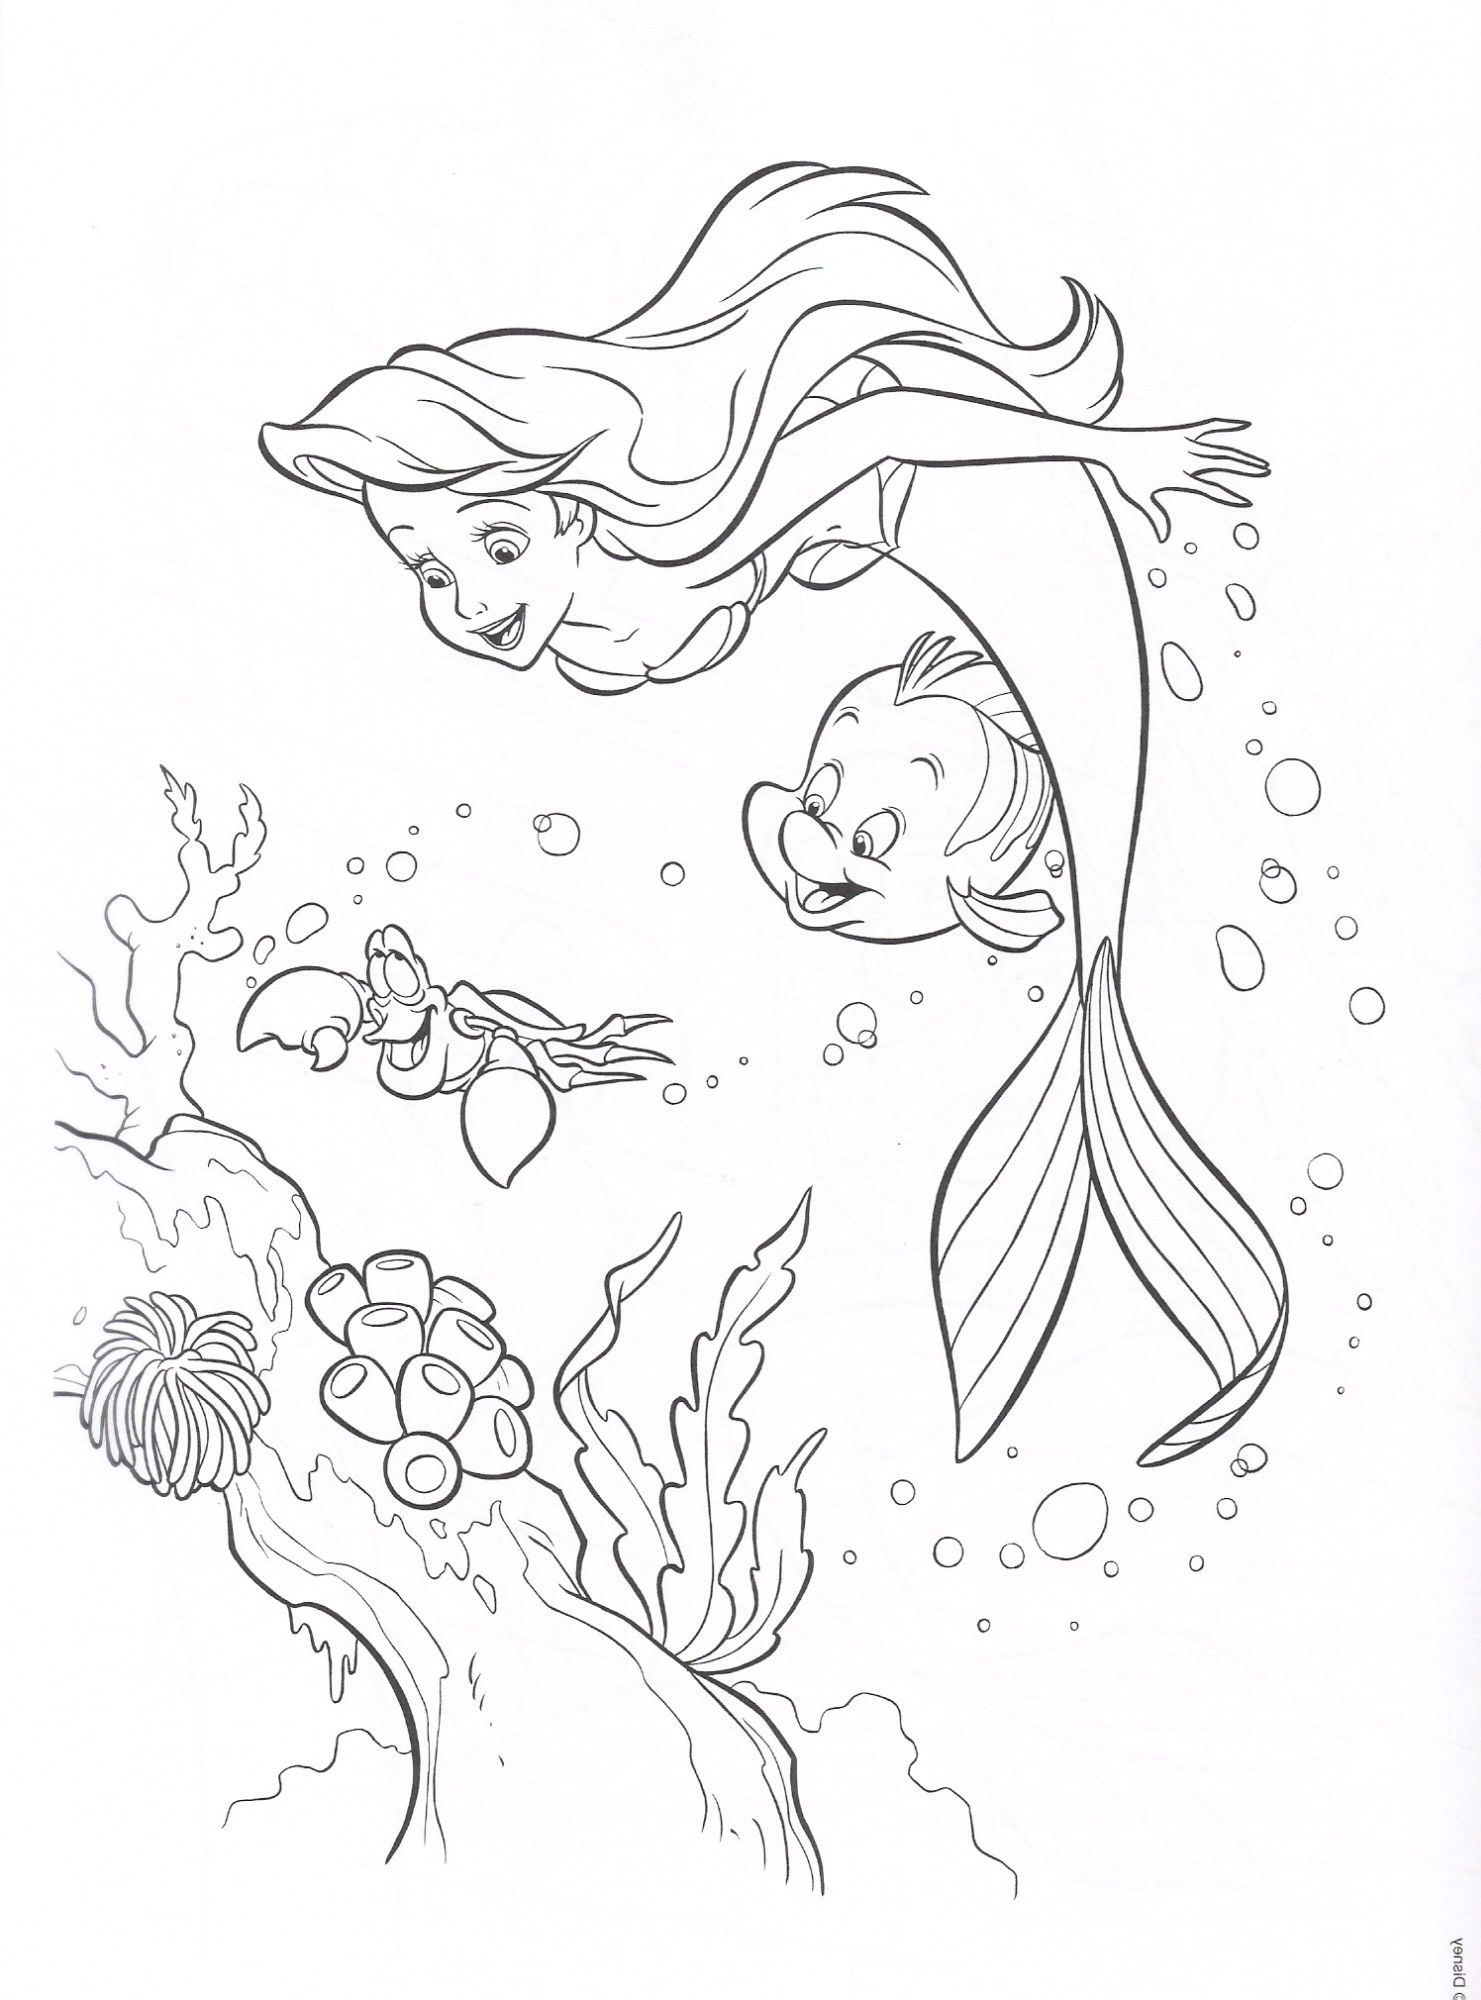 Free Little Mermaid Coloring Pages | Coloring pages | Pinterest ...